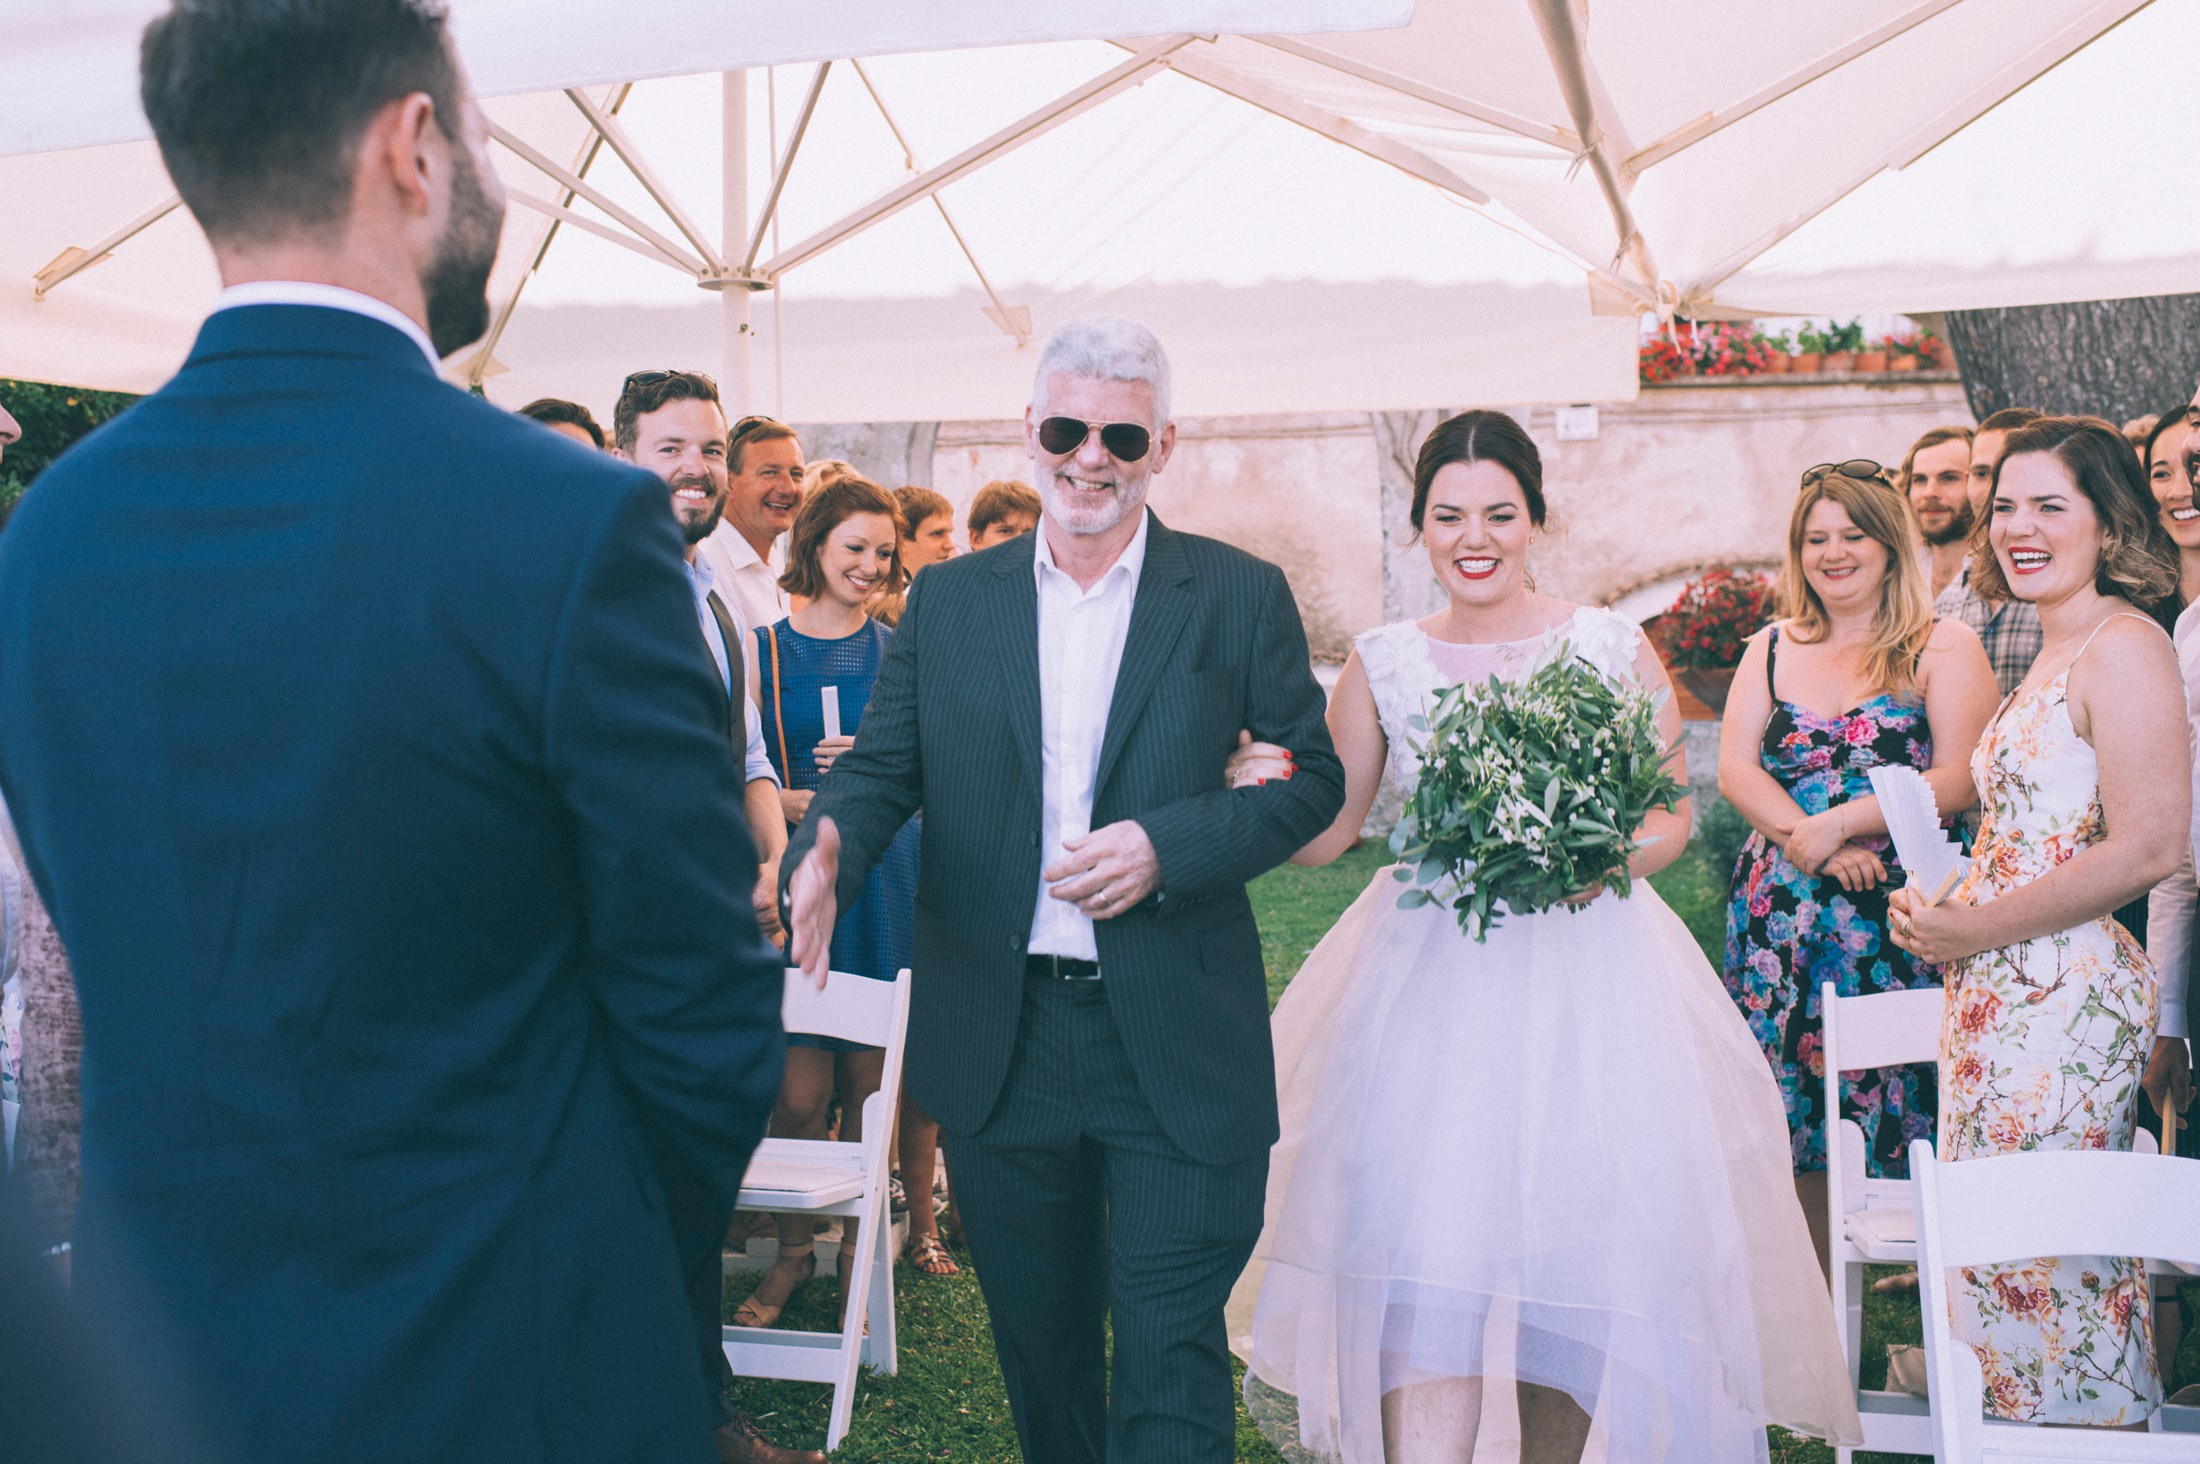 the bride arrives to the aisle with her father